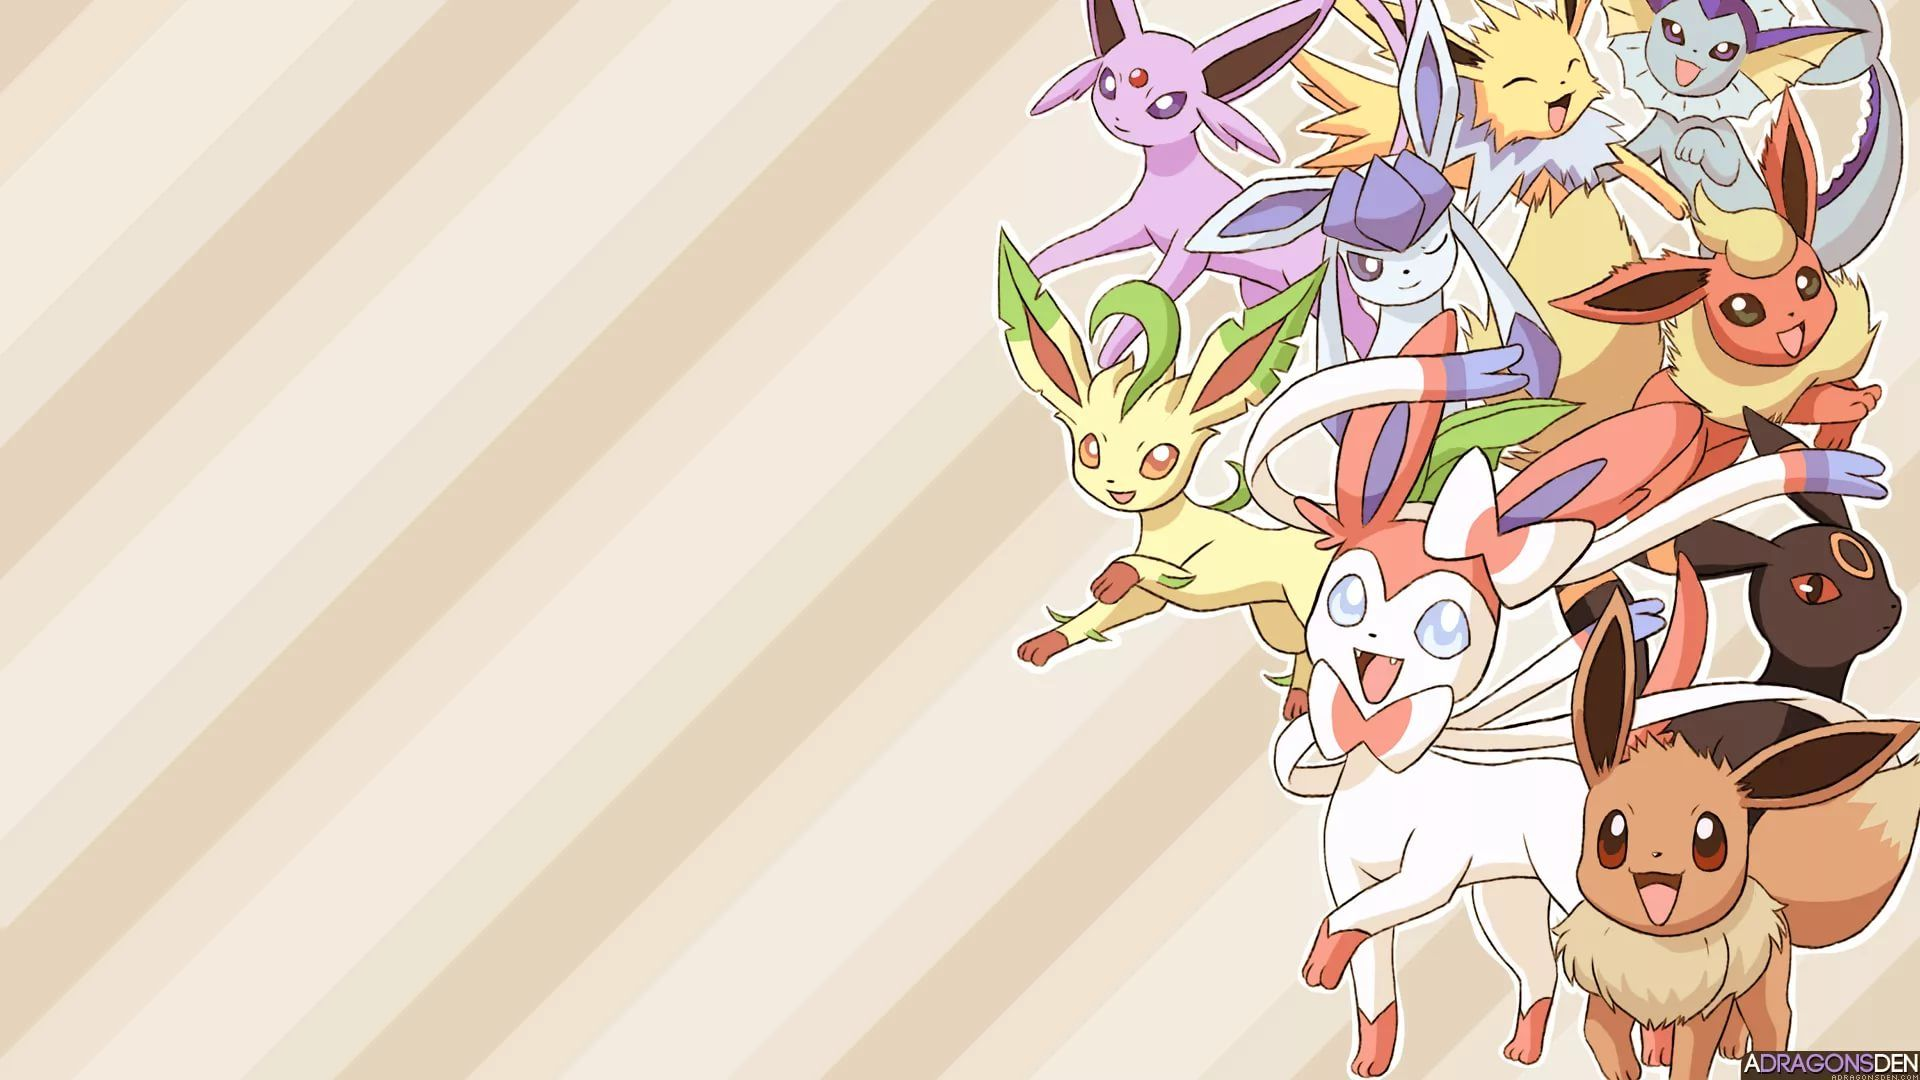 Eevee Evolution download free wallpaper image search